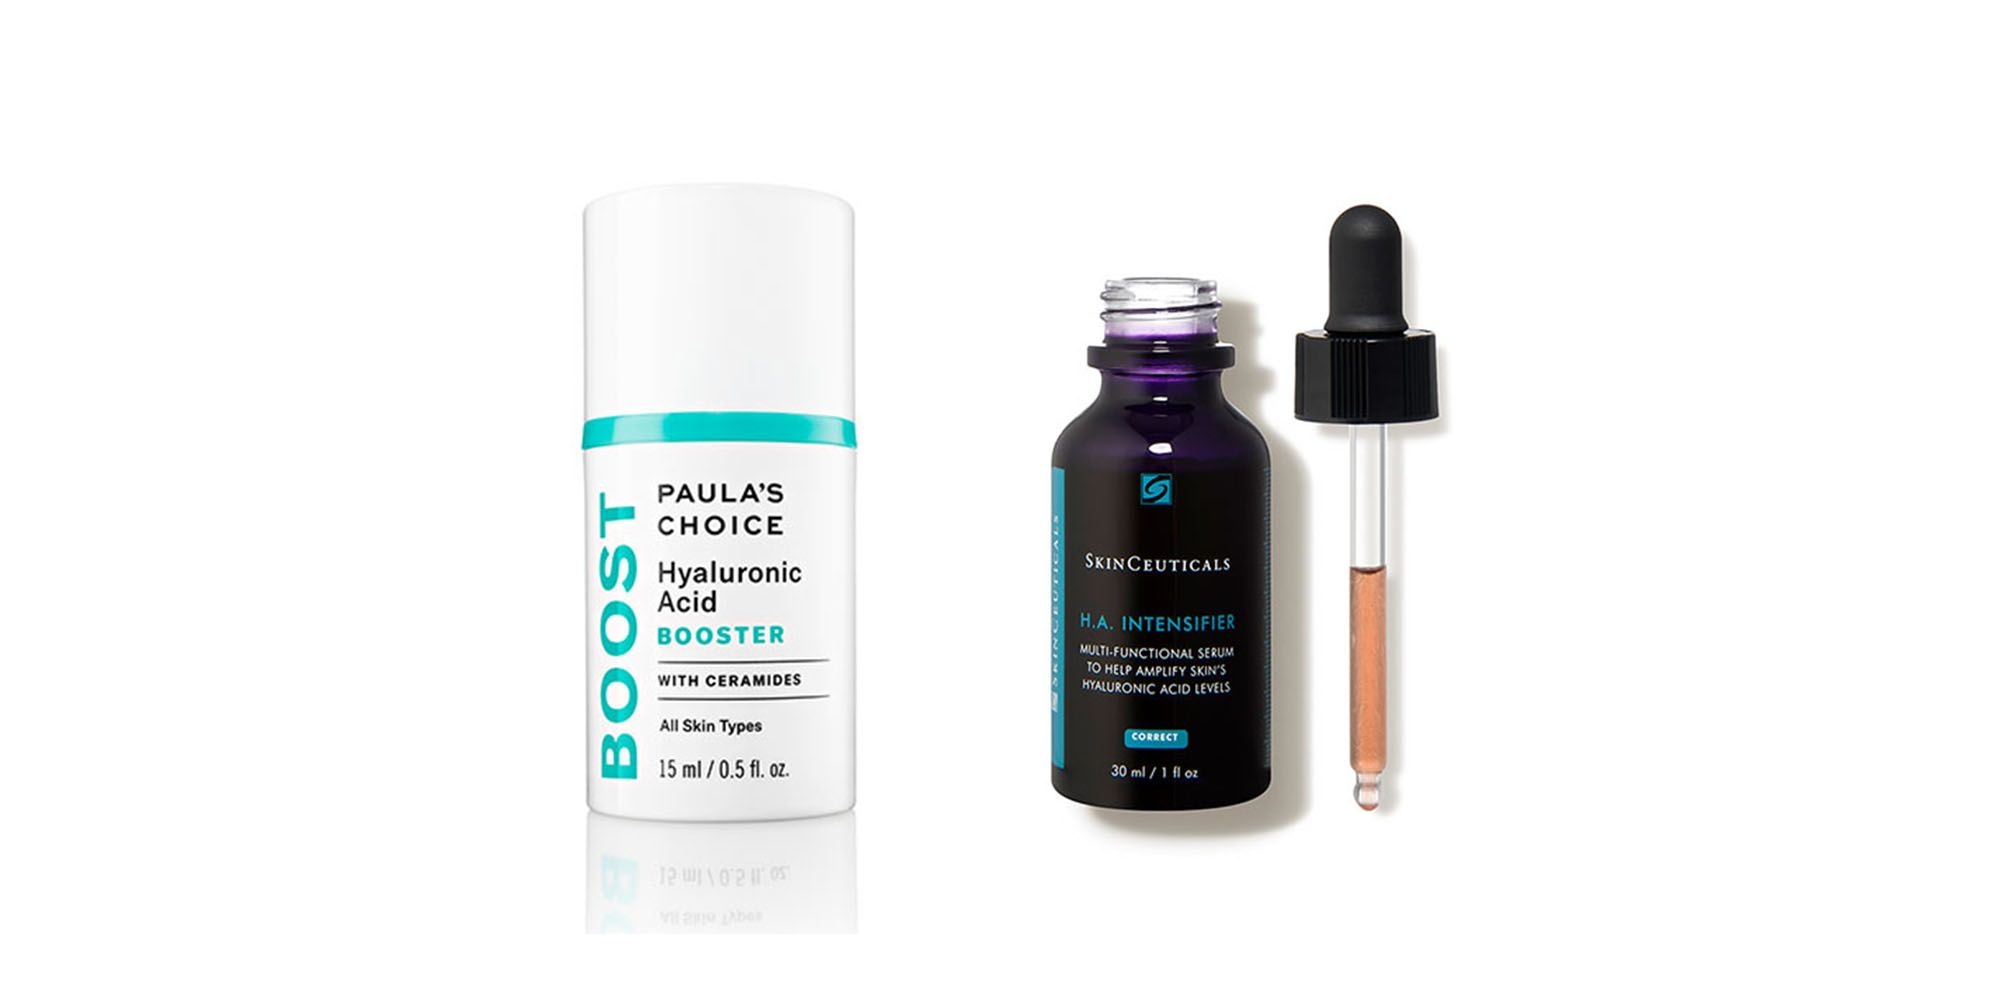 Paula's Choice Hyaluronic Acid Booster; Skinceuticals HA Intensifier